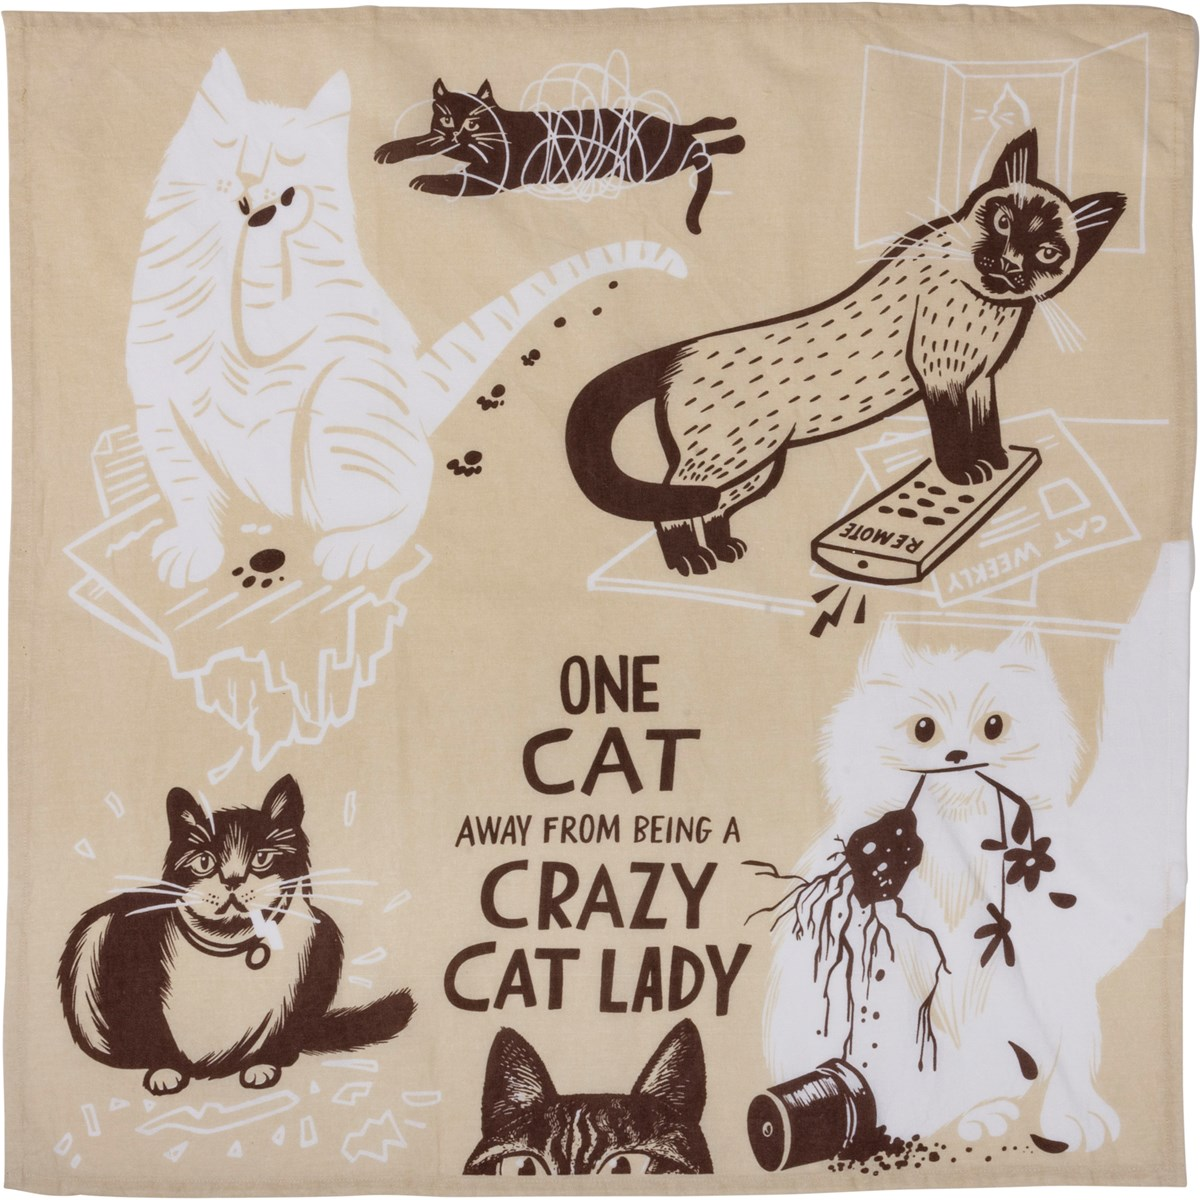 "Dish Towel - One Cat Away From A Crazy Cat Lady - 28"" x 28"" - Cotton"